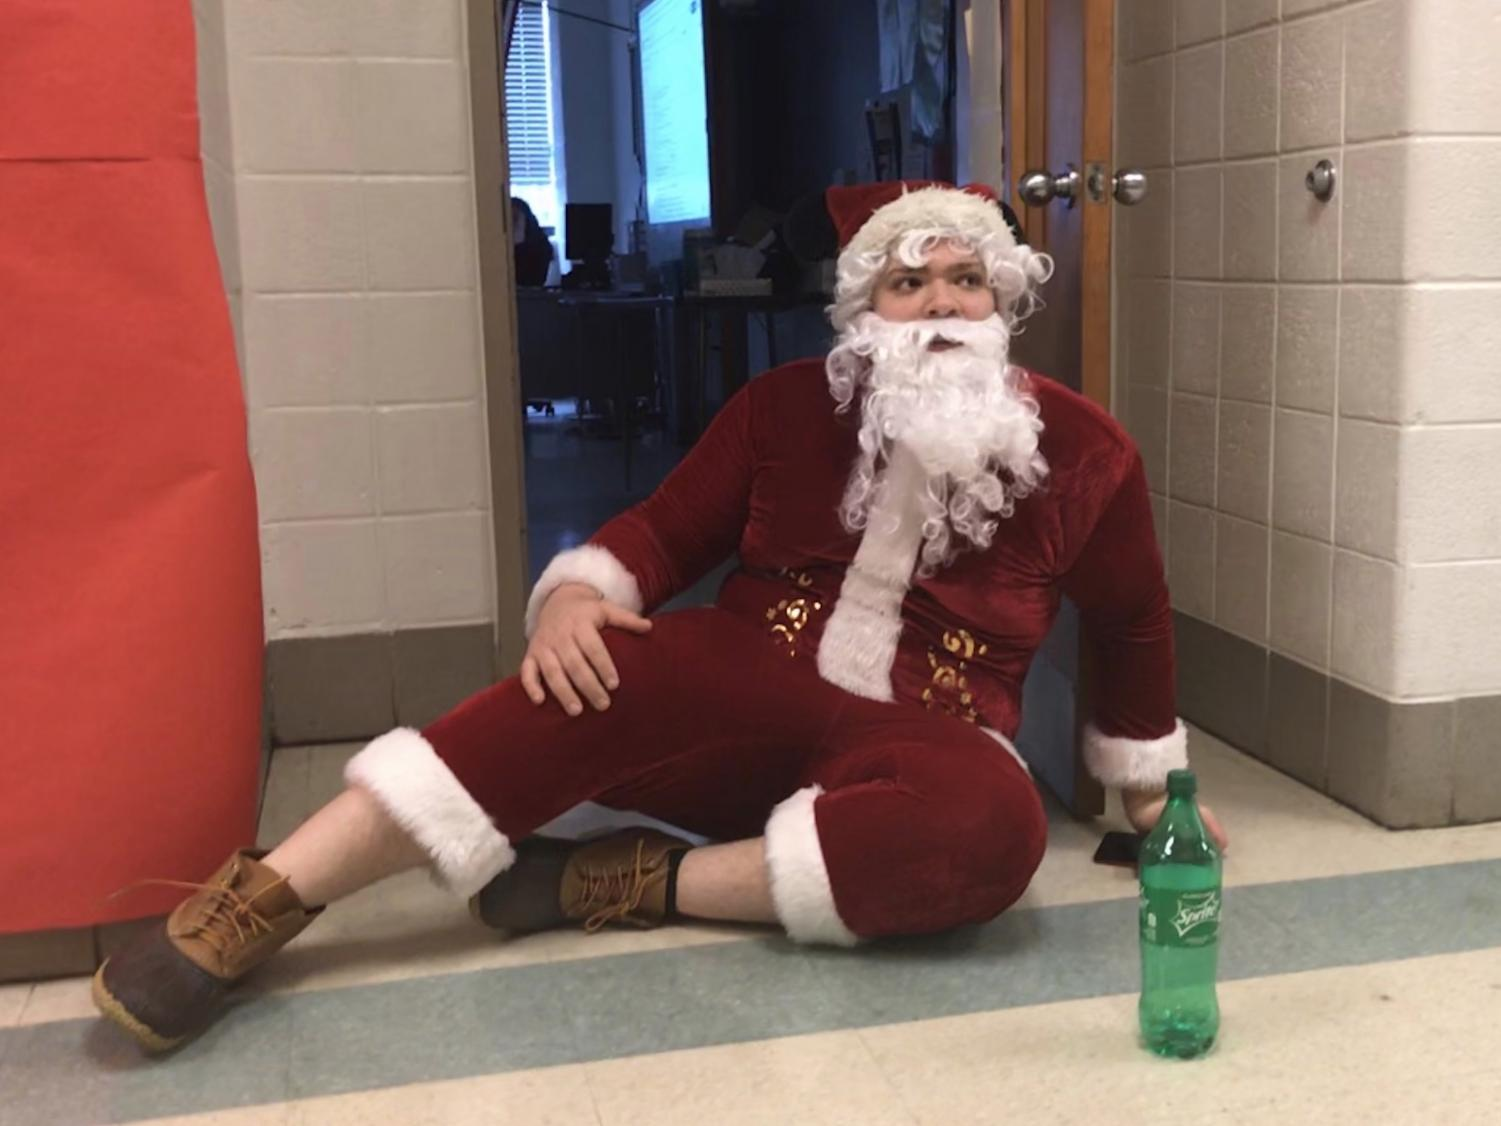 Santa (Class of 2018 alumni Tyler Lewis) returned to Watkins Mill to spread holiday cheer in a now-annual tradition.